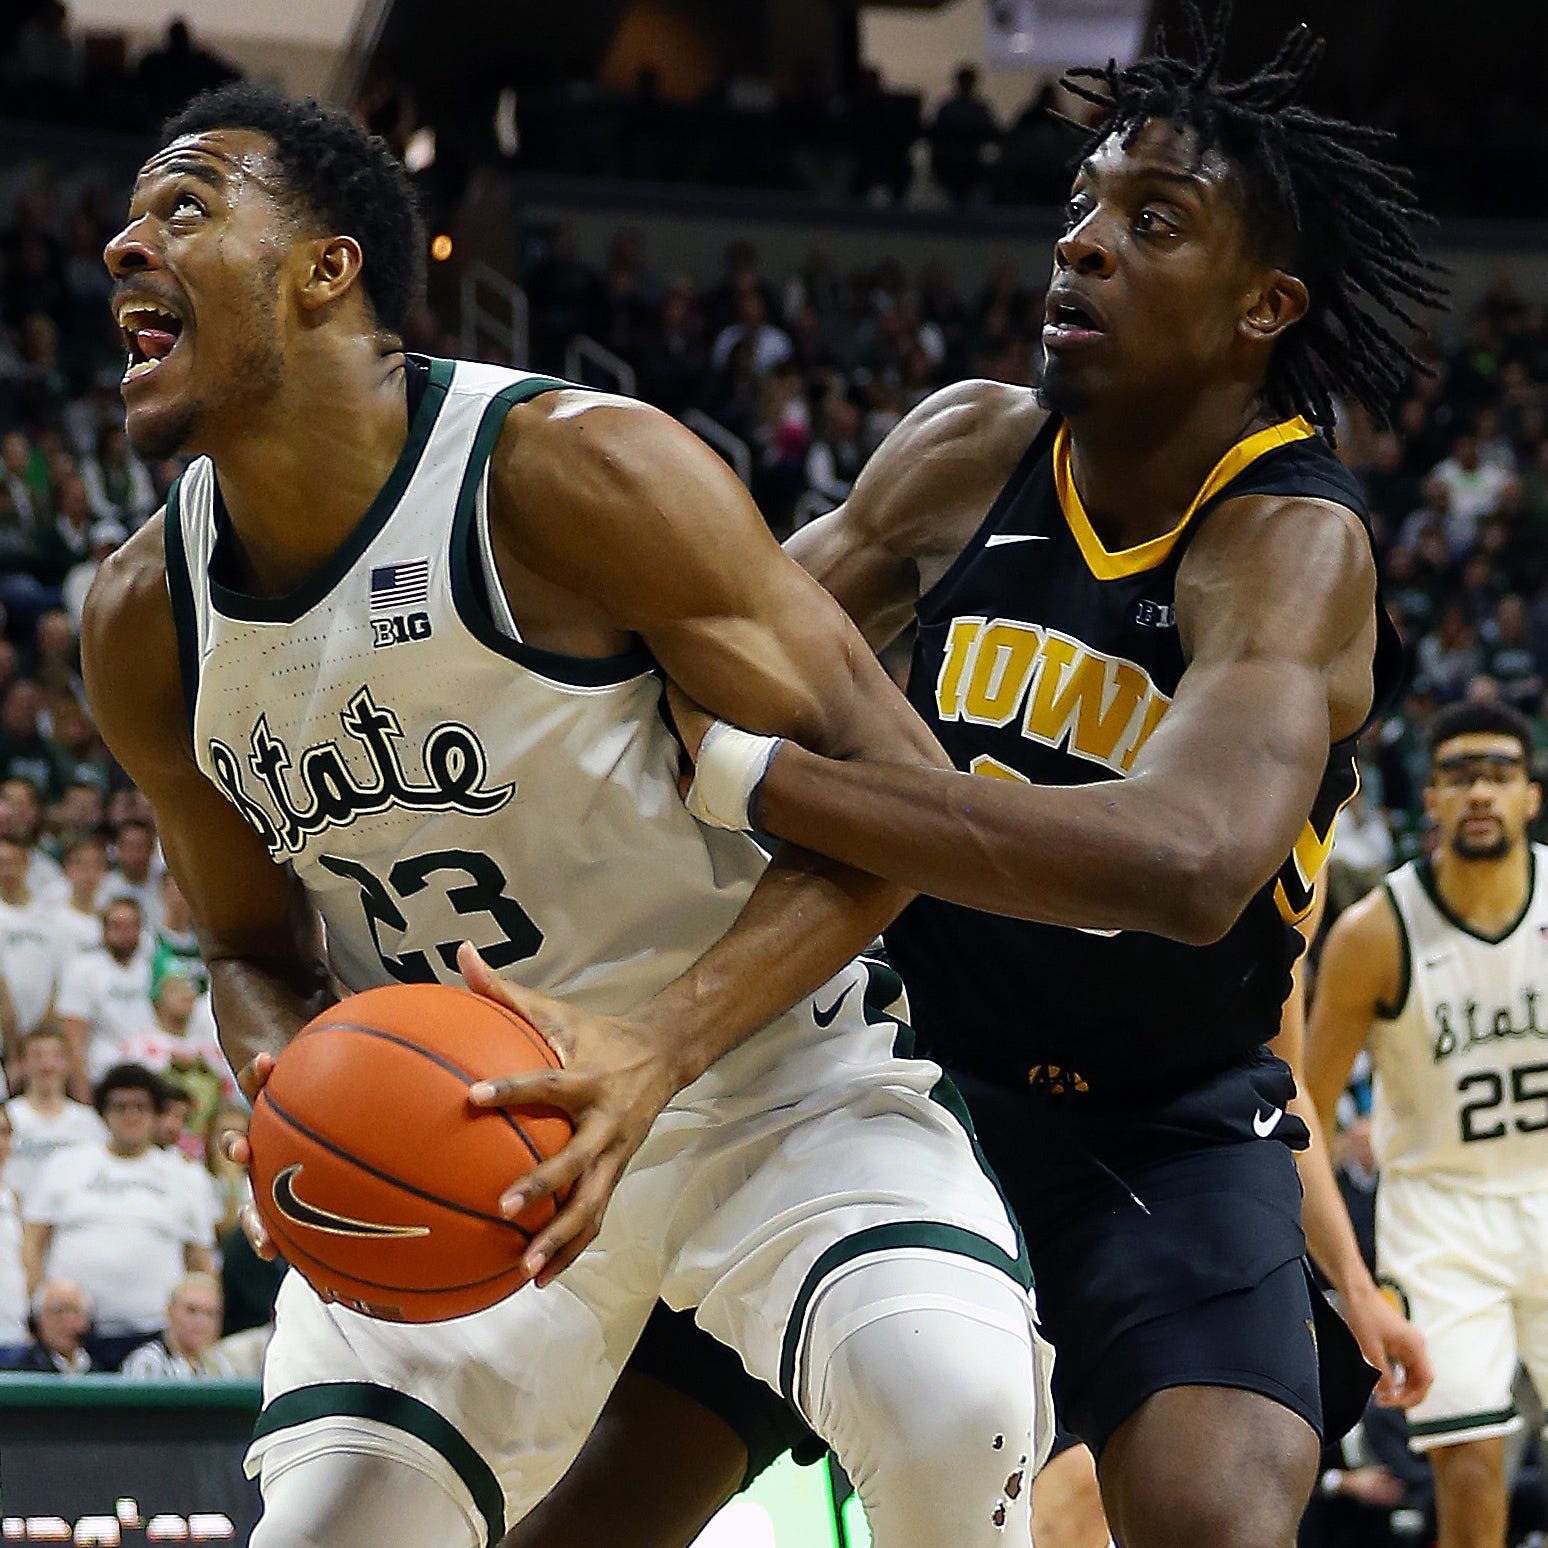 Michigan State basketball at Iowa tipoff: Preview, prediction, betting line, how to watch